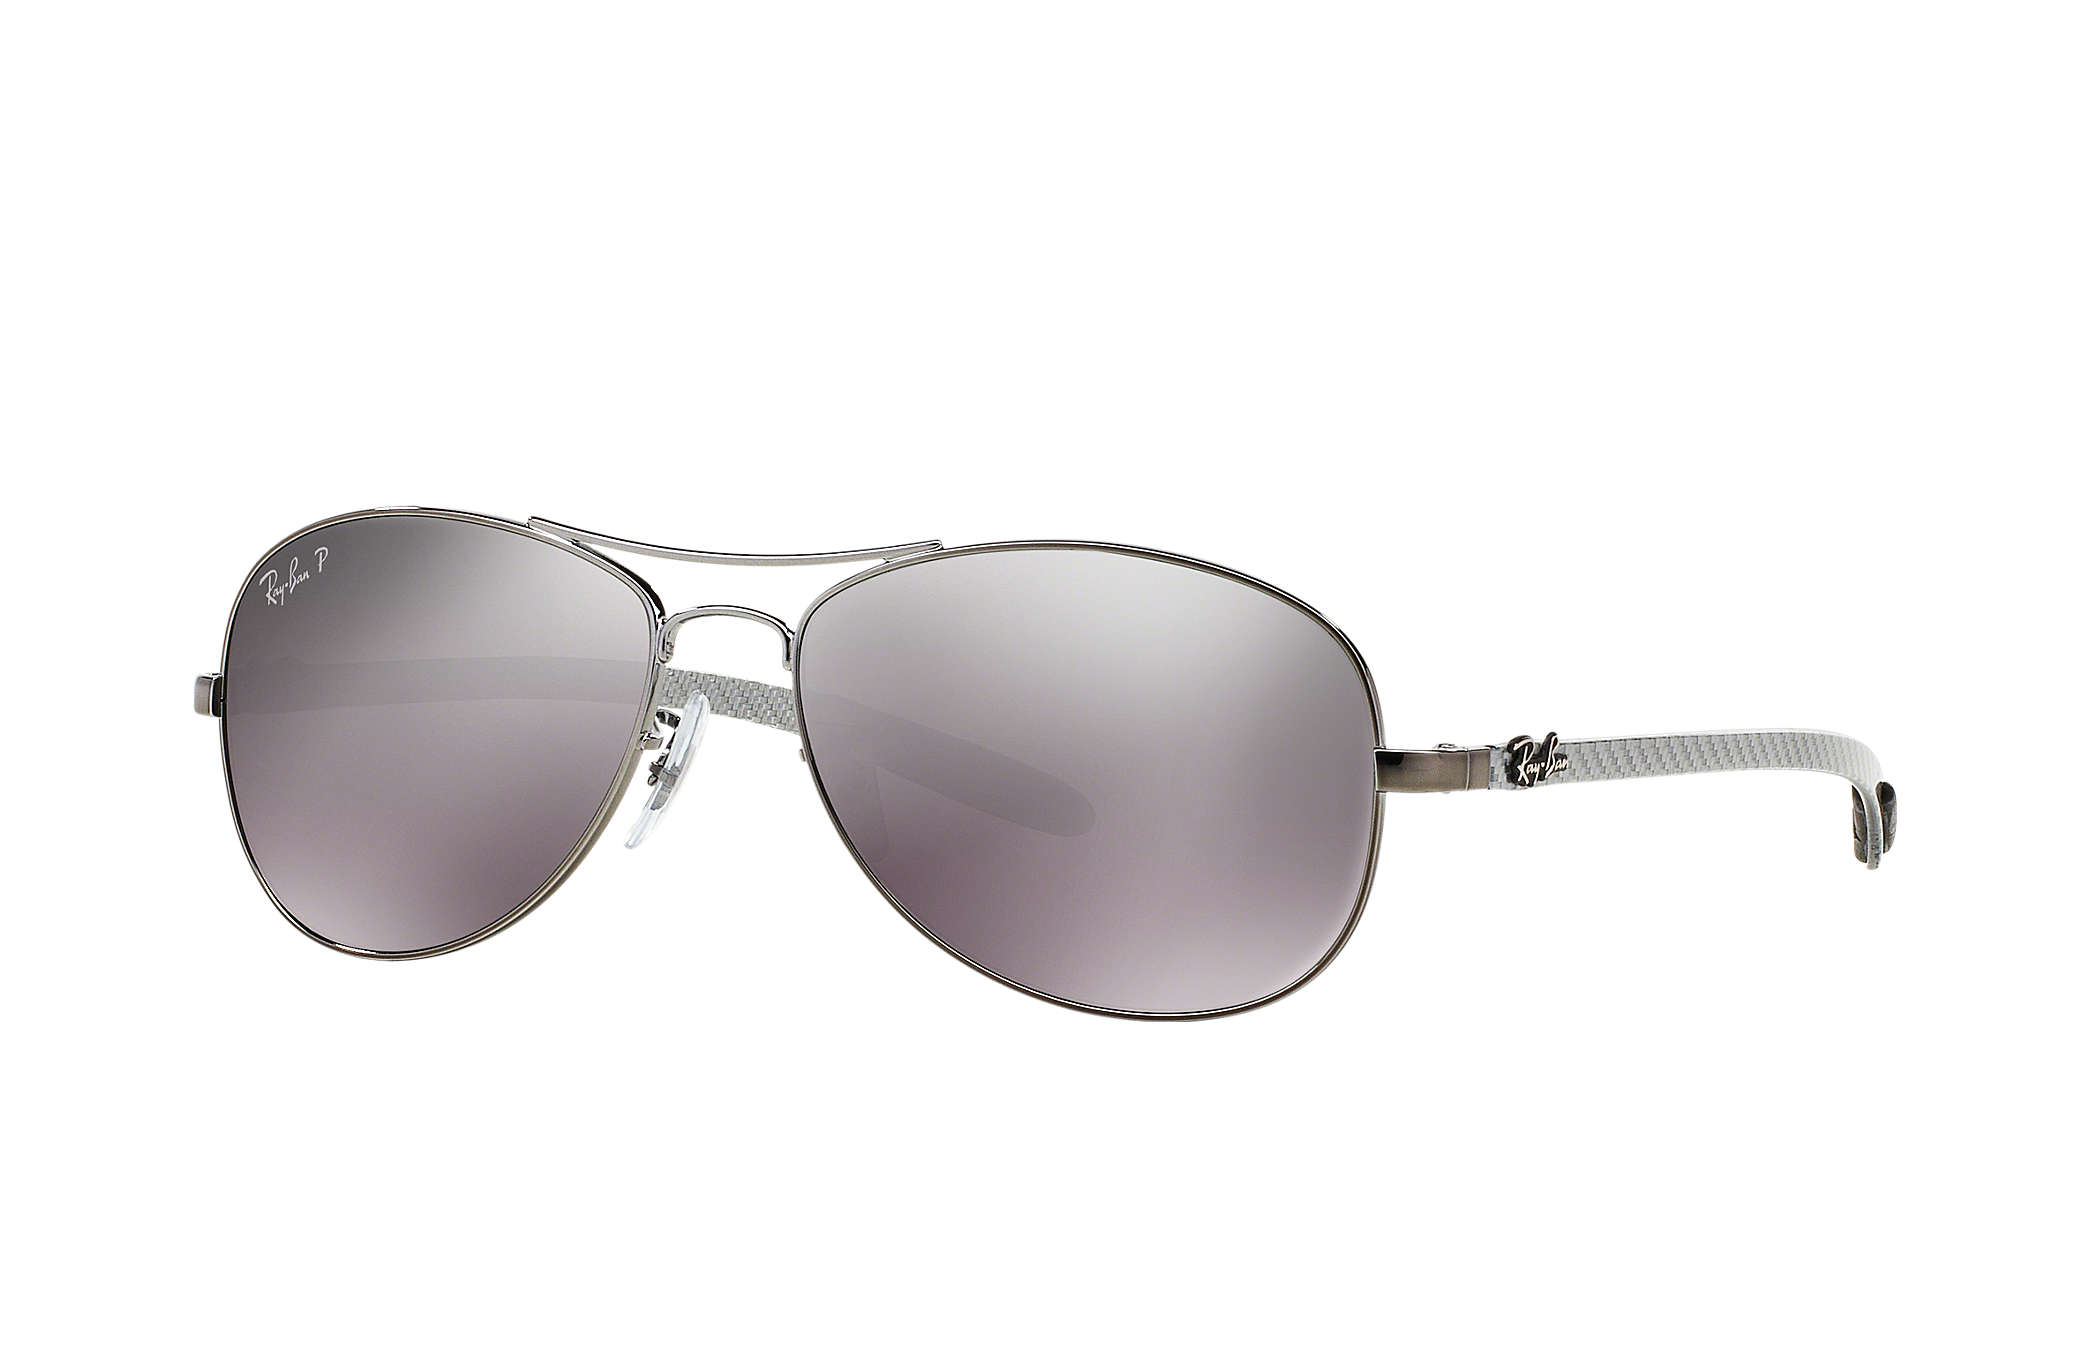 5ccfb963502922 Details about Ray-Ban RB8301 004 N8 Ray-Ban Monel Aviator Polarized  Gunmetal Sunglasses